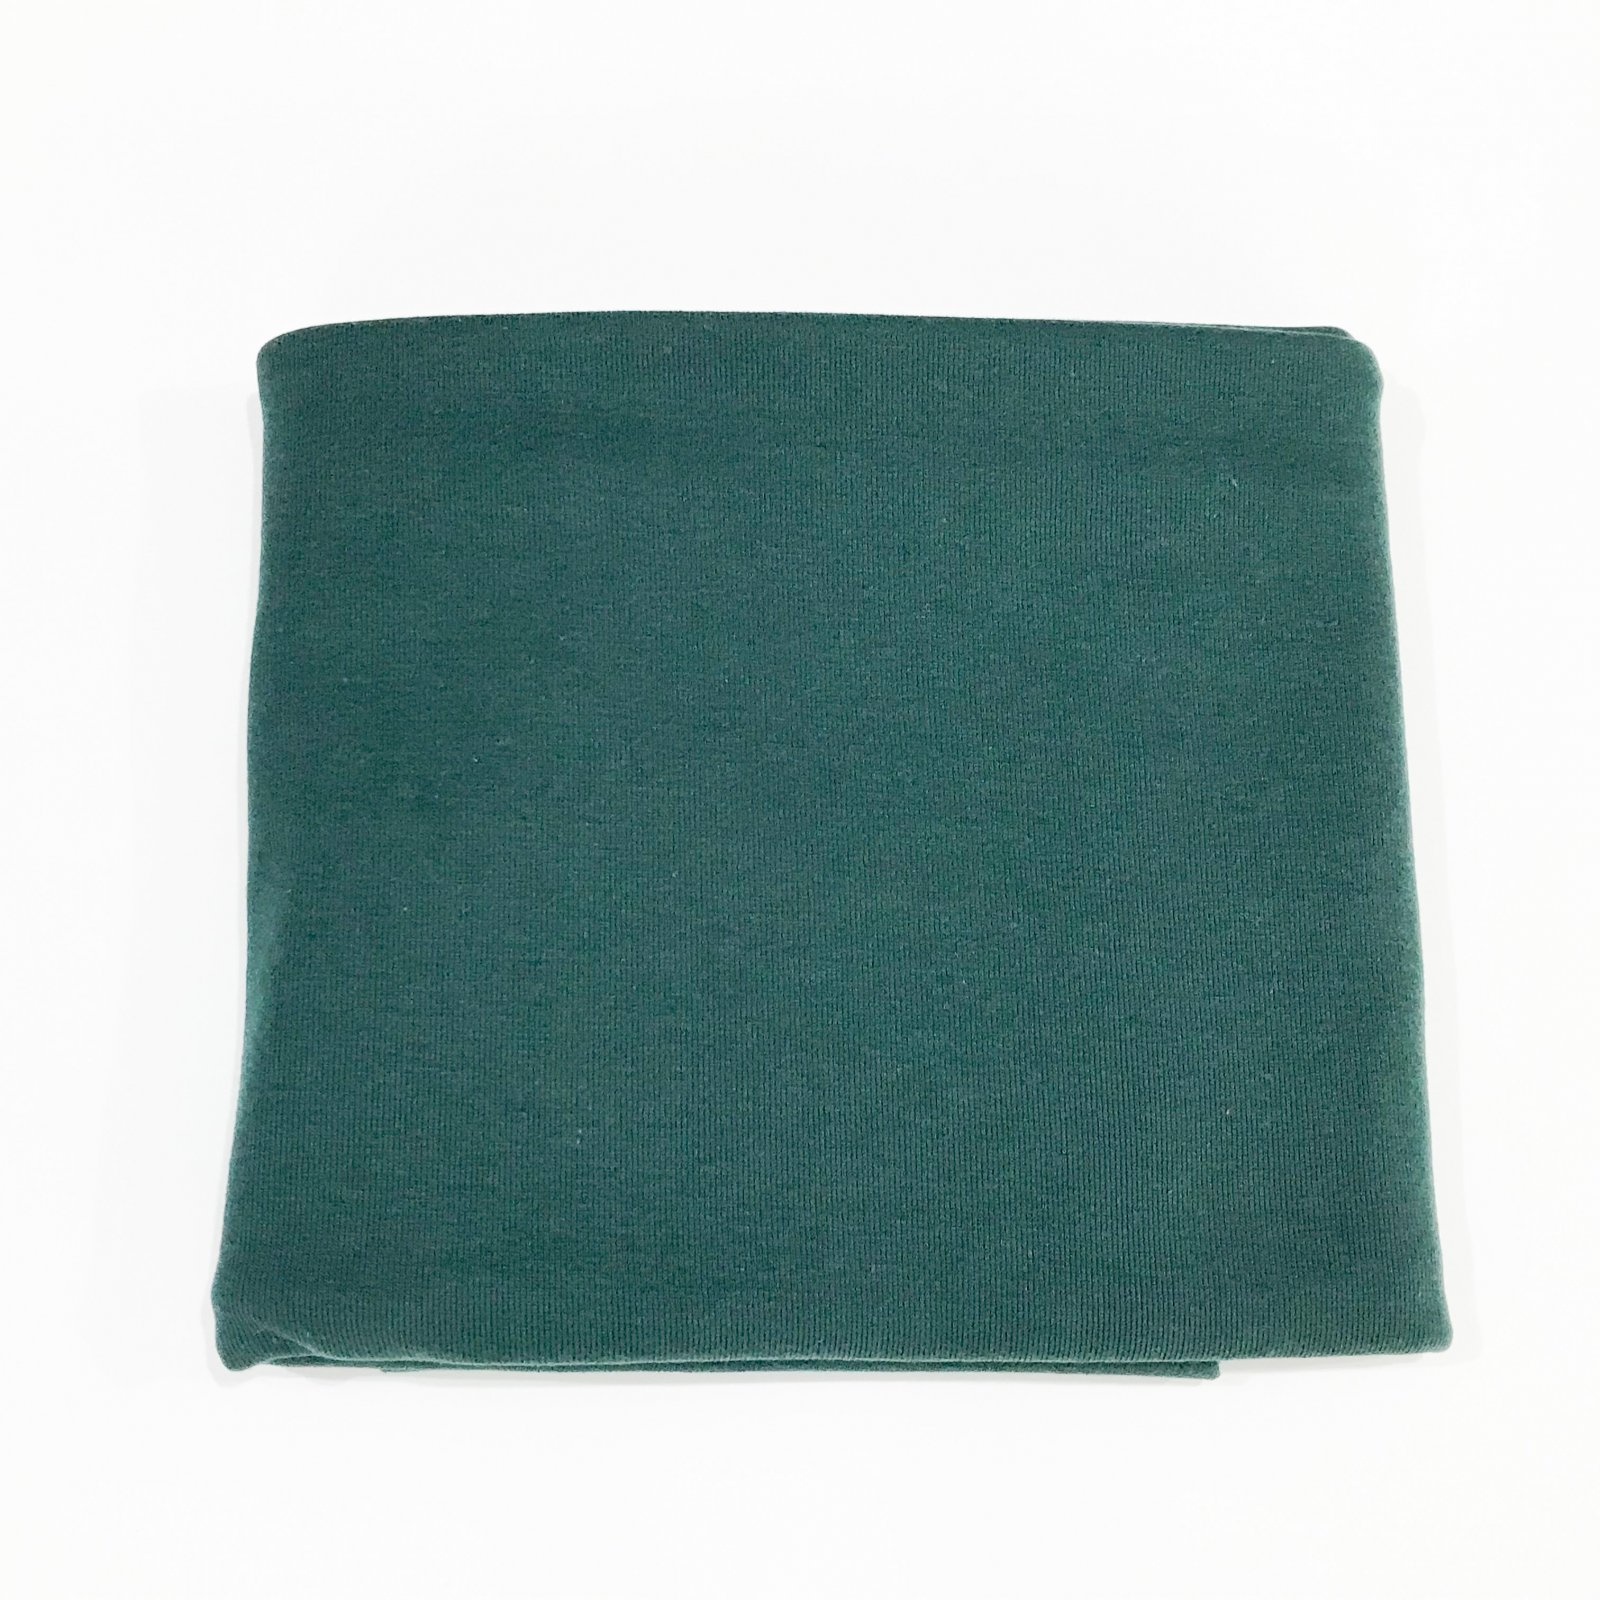 1 1/2 yard - Rib Knit 1X1 - Pine Green